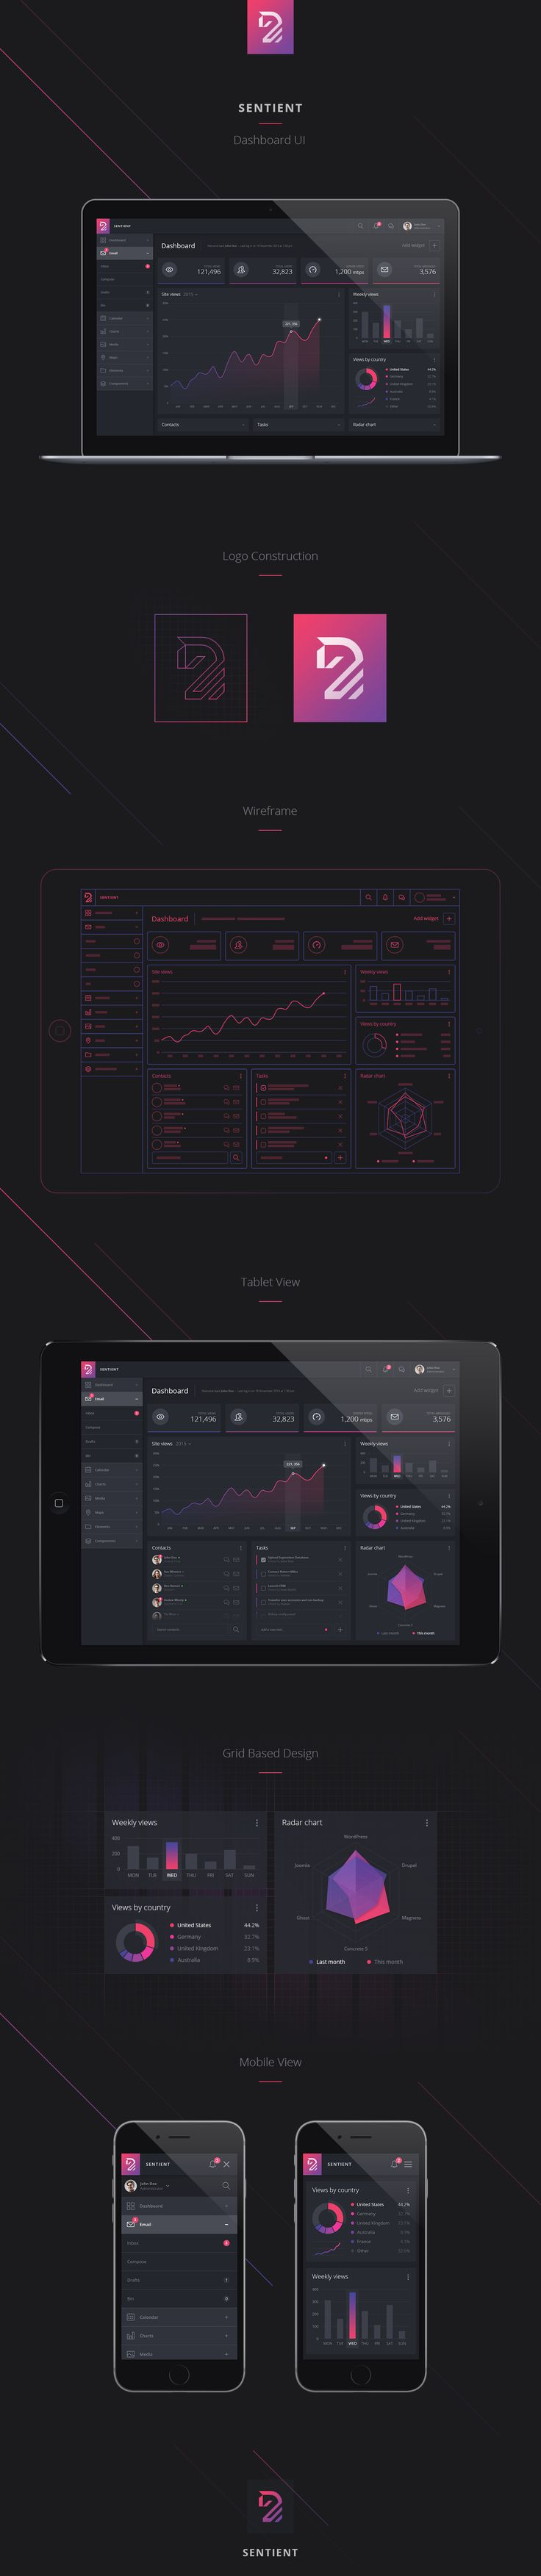 Sentient - Dashboard UI on Behance